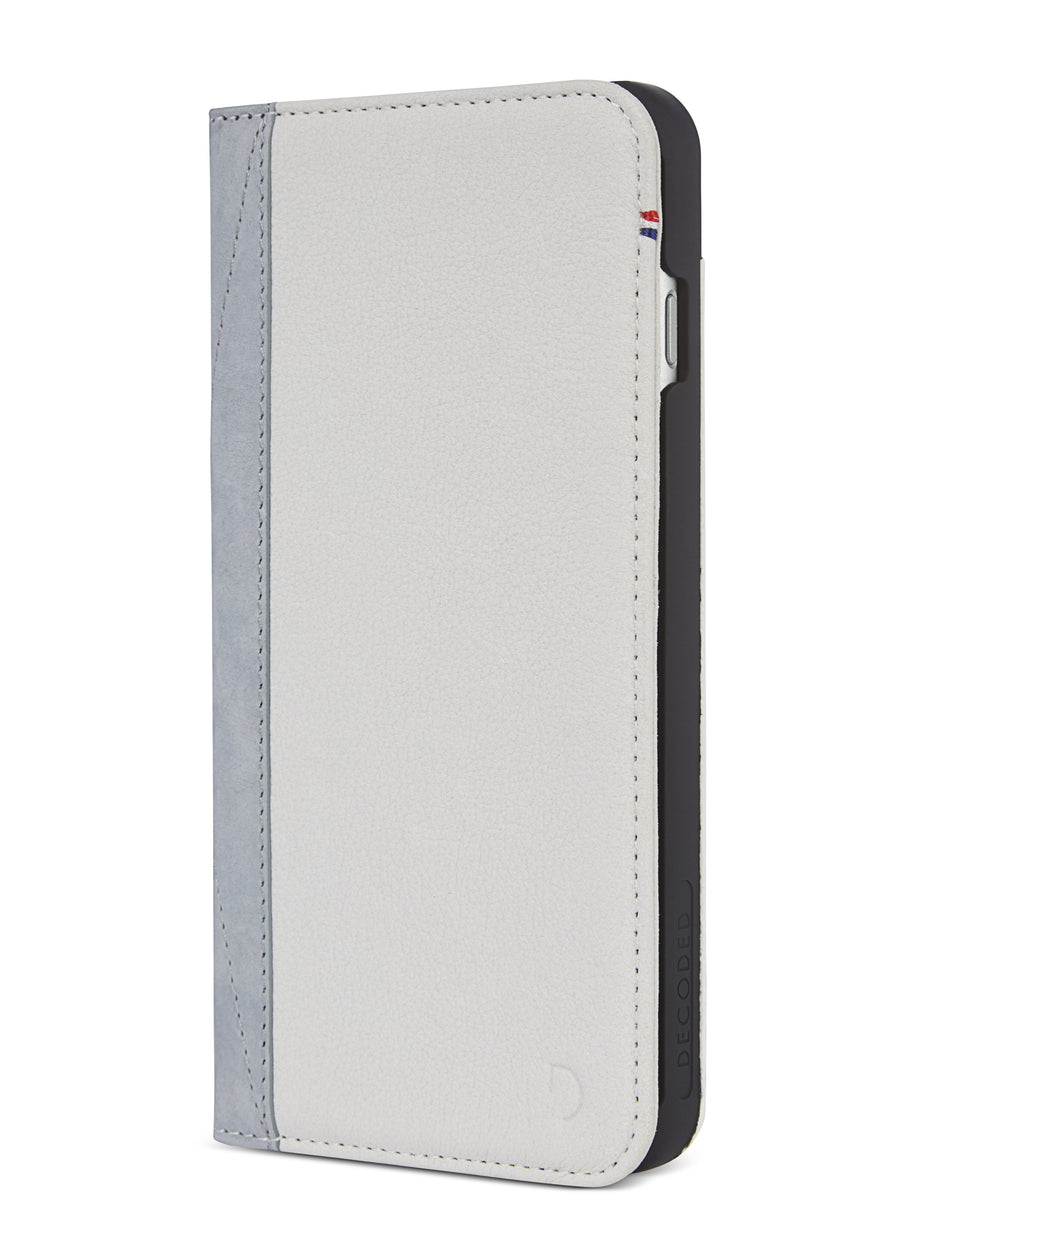 Wallet Case White/Grey - iPhone 8-Decoded Bags